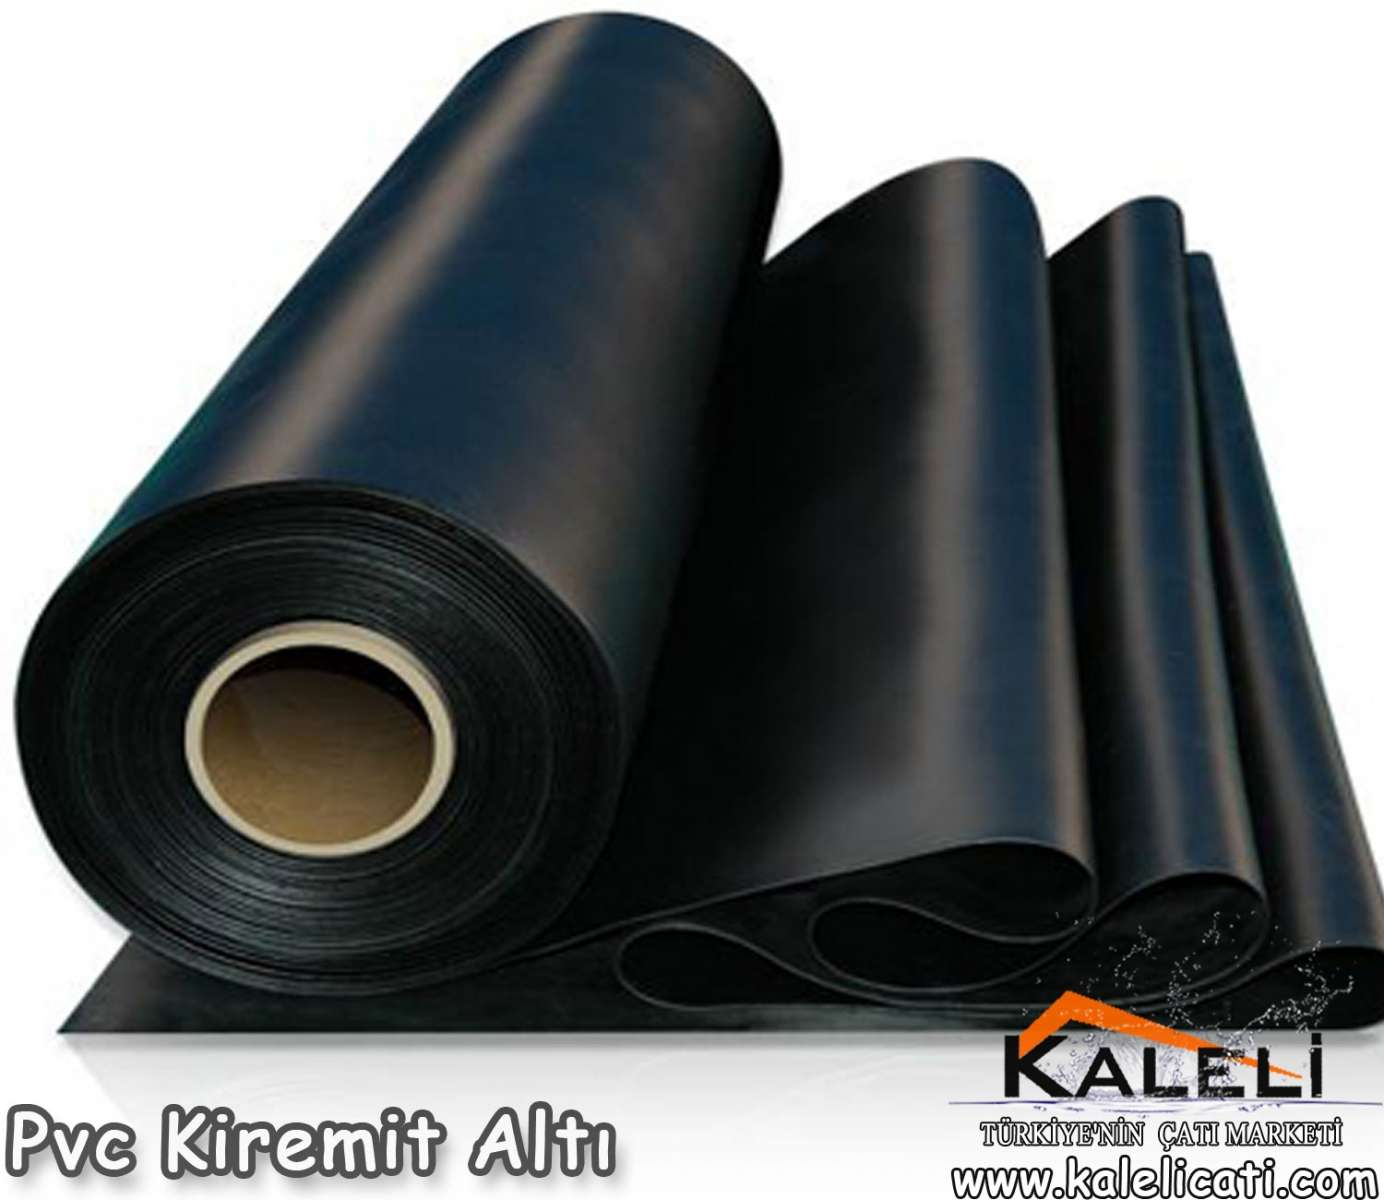 Pvc Kiremit Altı 1x150 m- 1,35 mm